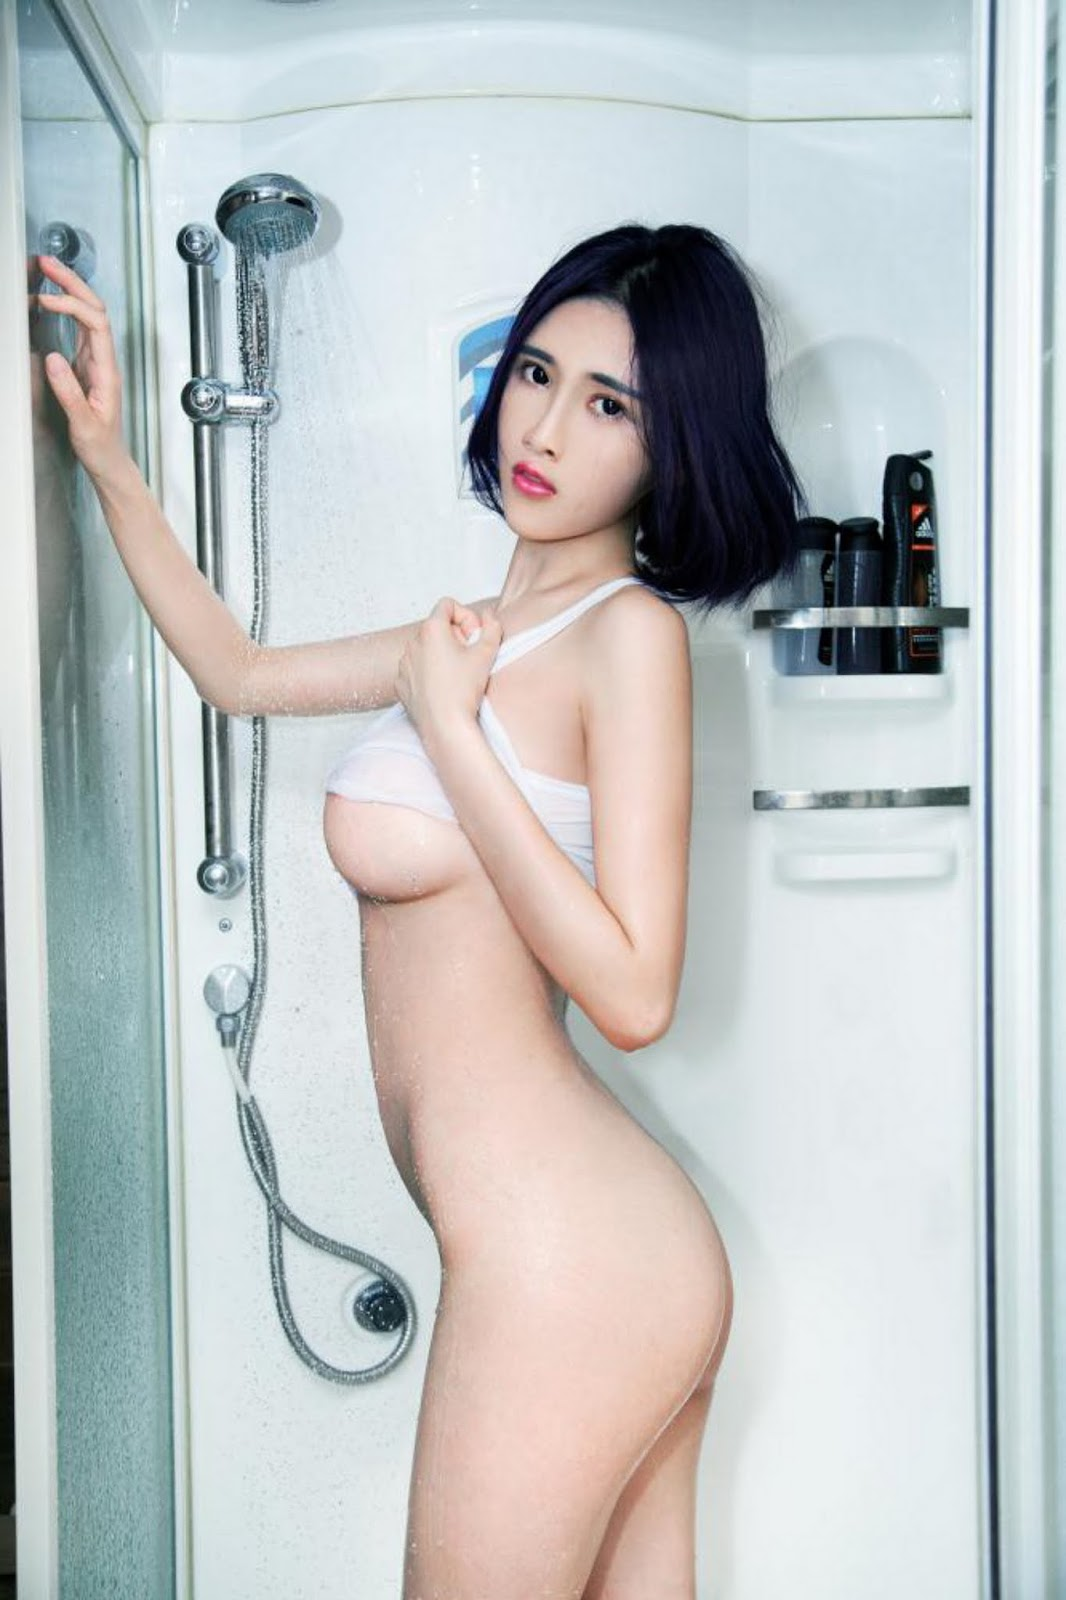 13 - Lake Model Sexy TUIGIRL NO.52 Hot